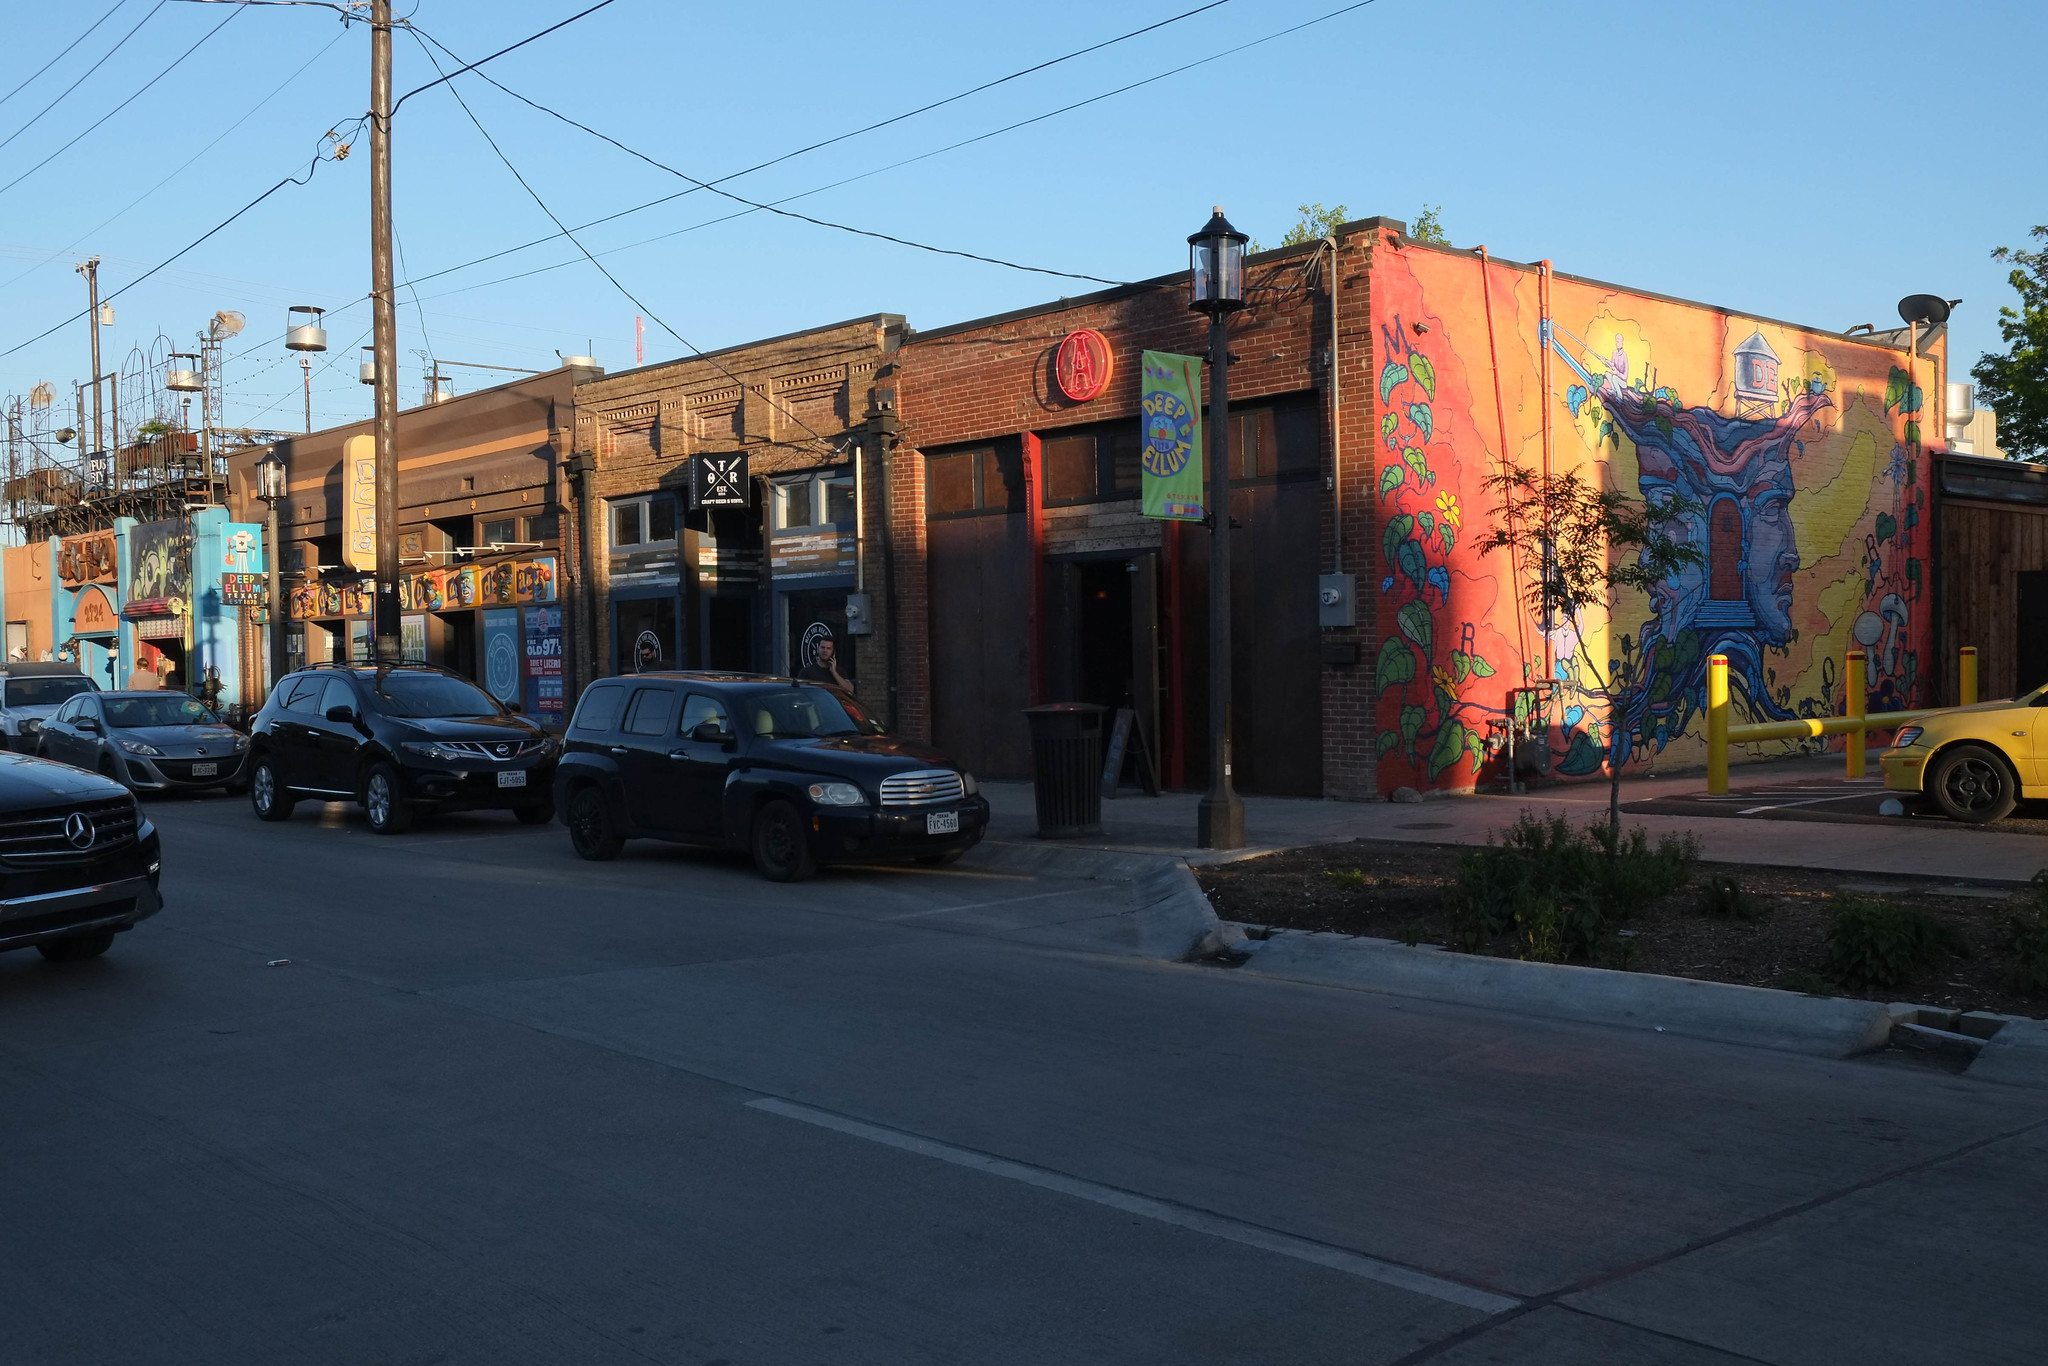 Businesses in Deep Ellum in Dallas.